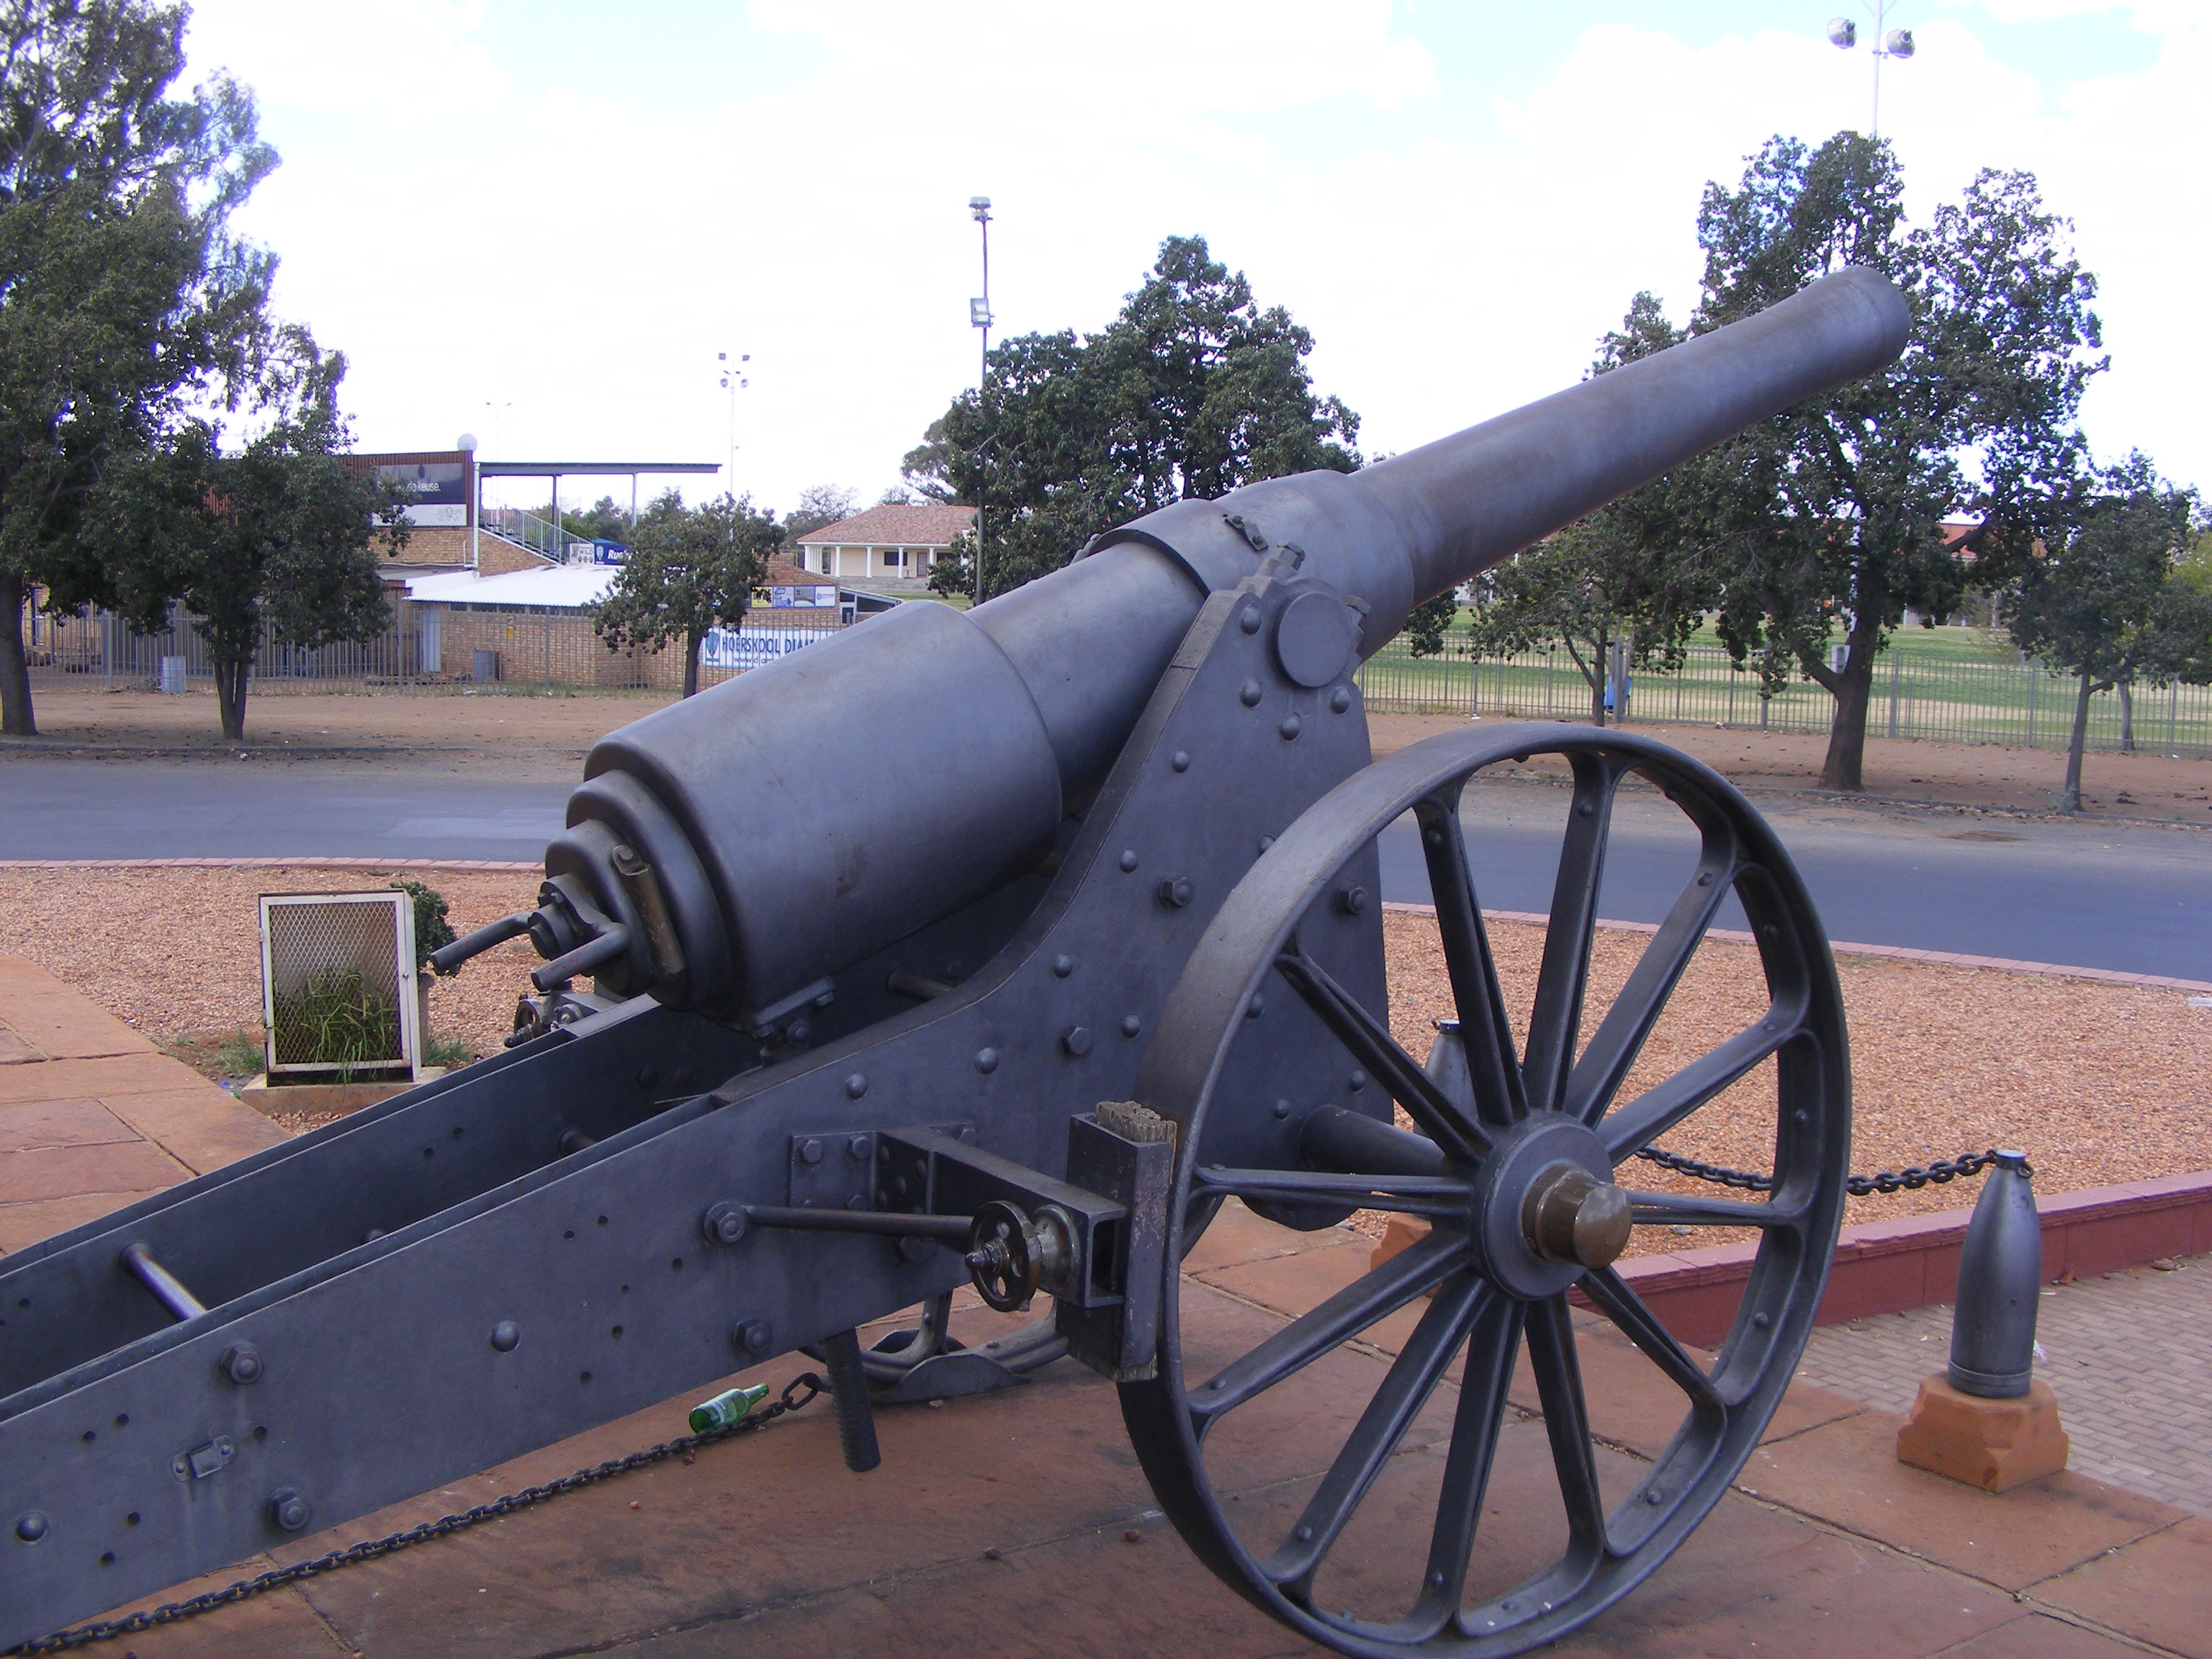 Anglo Boer War Conference in Bloemfontein